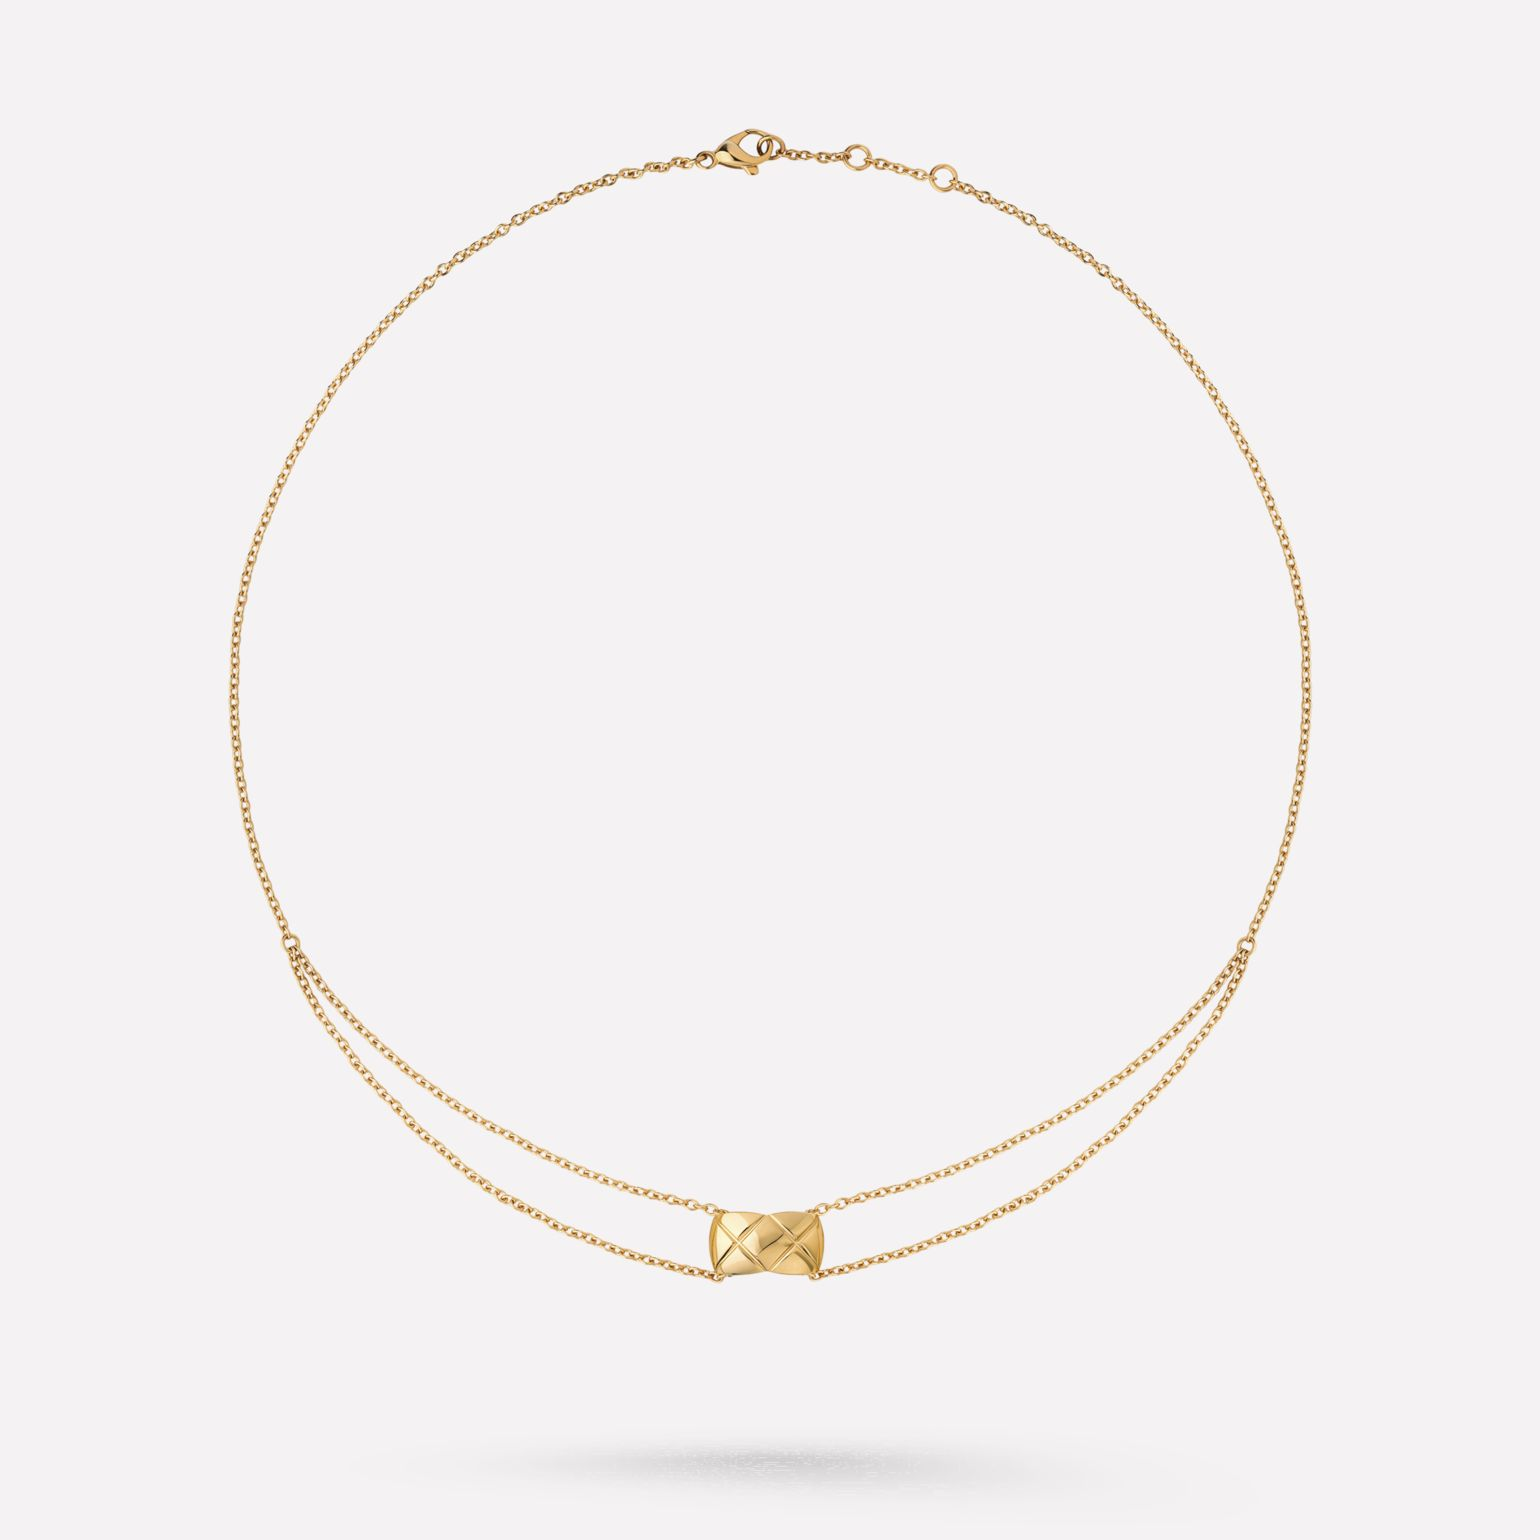 Coco Crush necklace Quilted motif necklace in 18K yellow gold